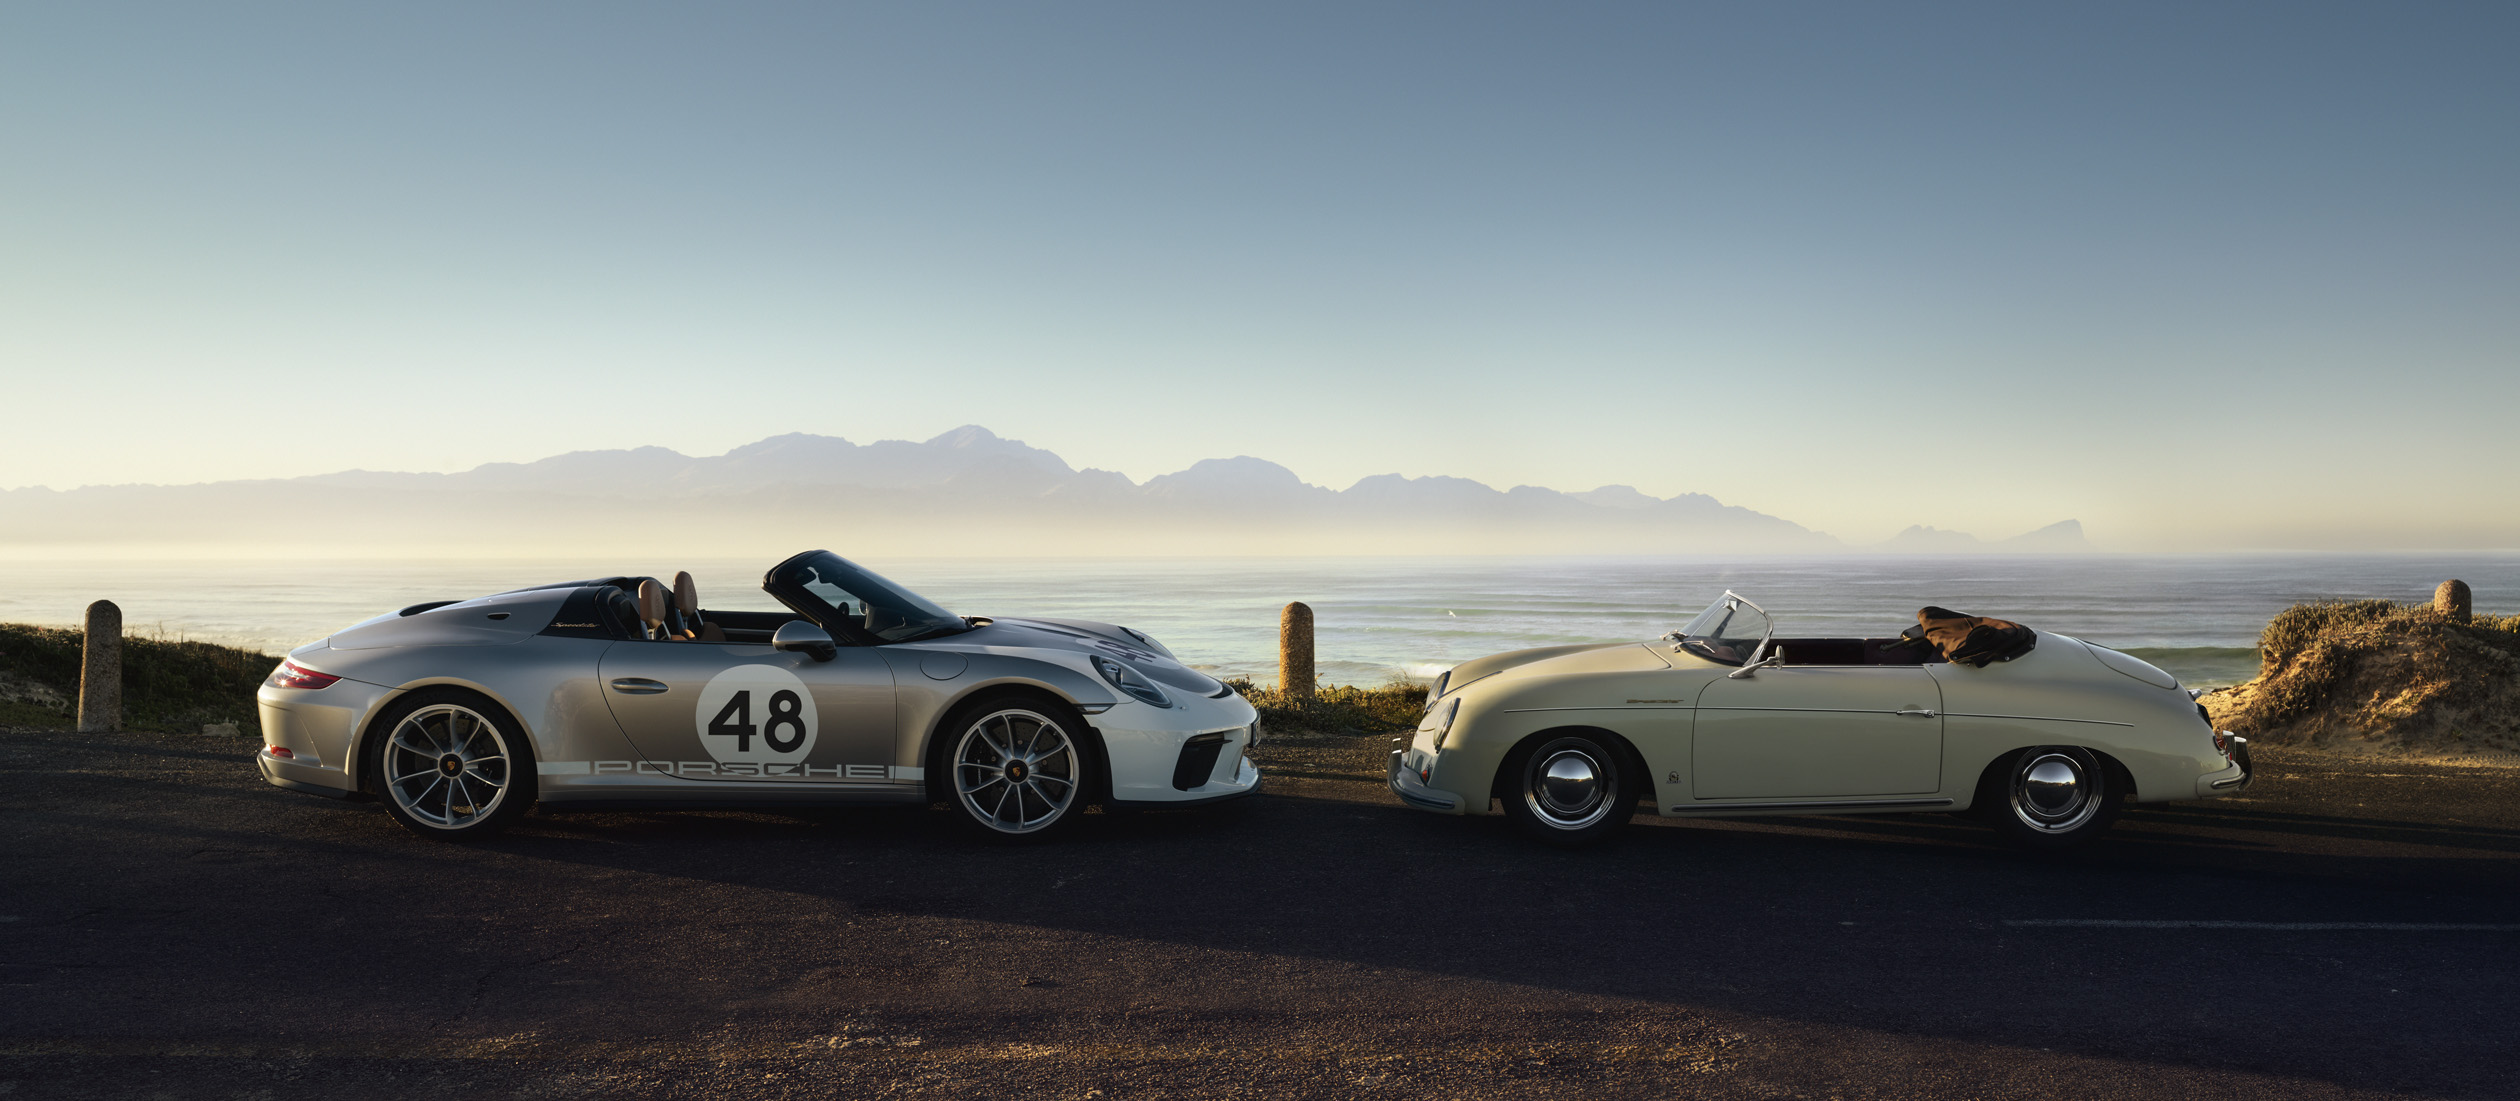 911 Speedster, Heritage Design - Package and 356 1500 Speedster